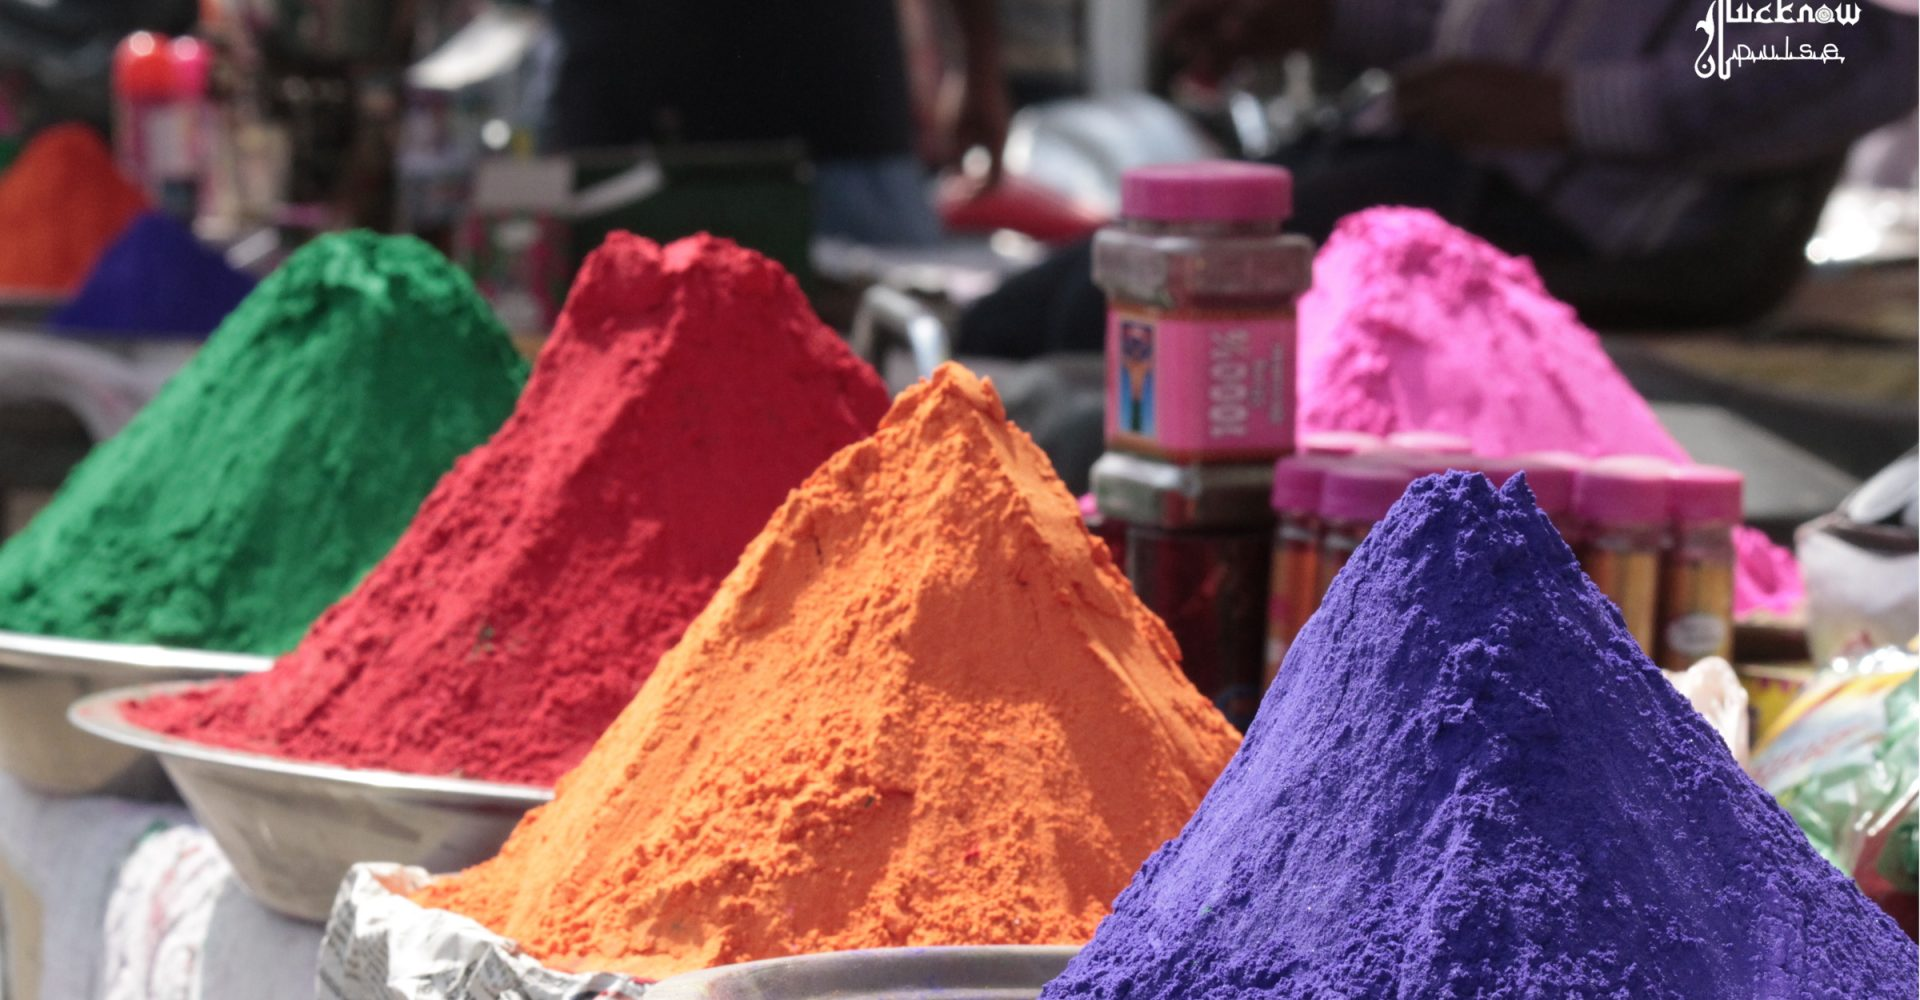 colorus sold at a roadside stall in Lucknow for the festival of colors - Holi